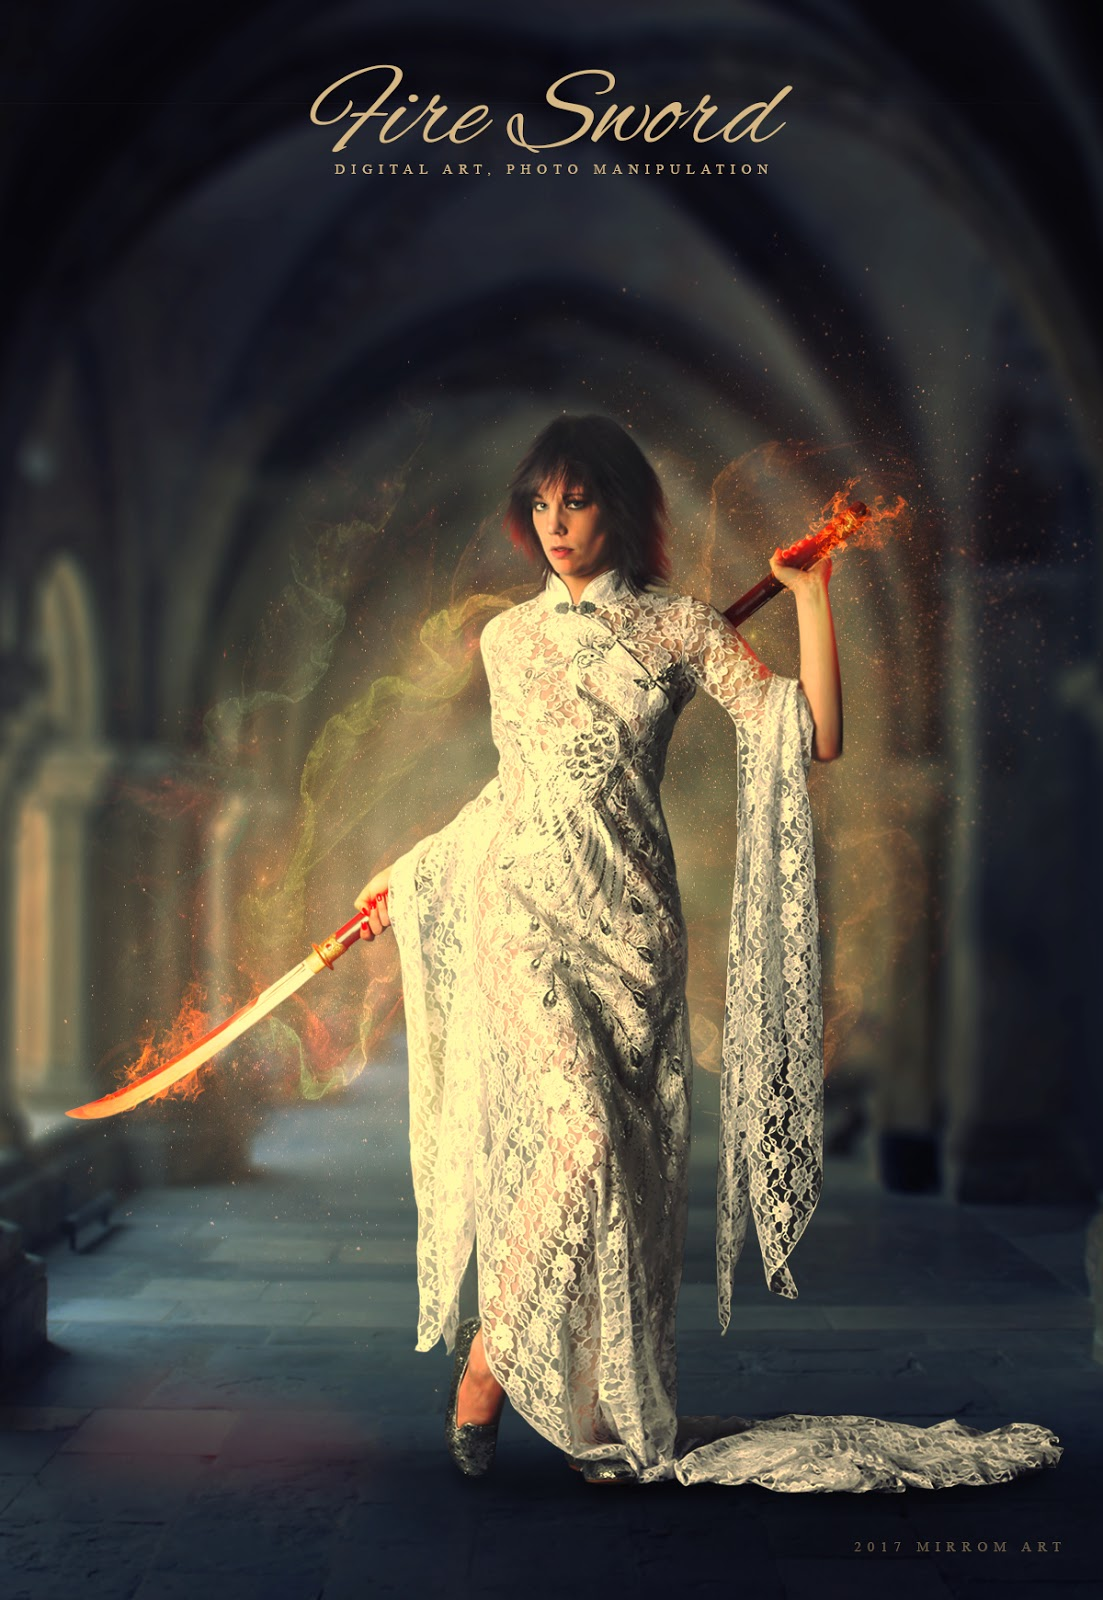 Fire Sword Fantasy Art Photo Manipulation In Photoshop